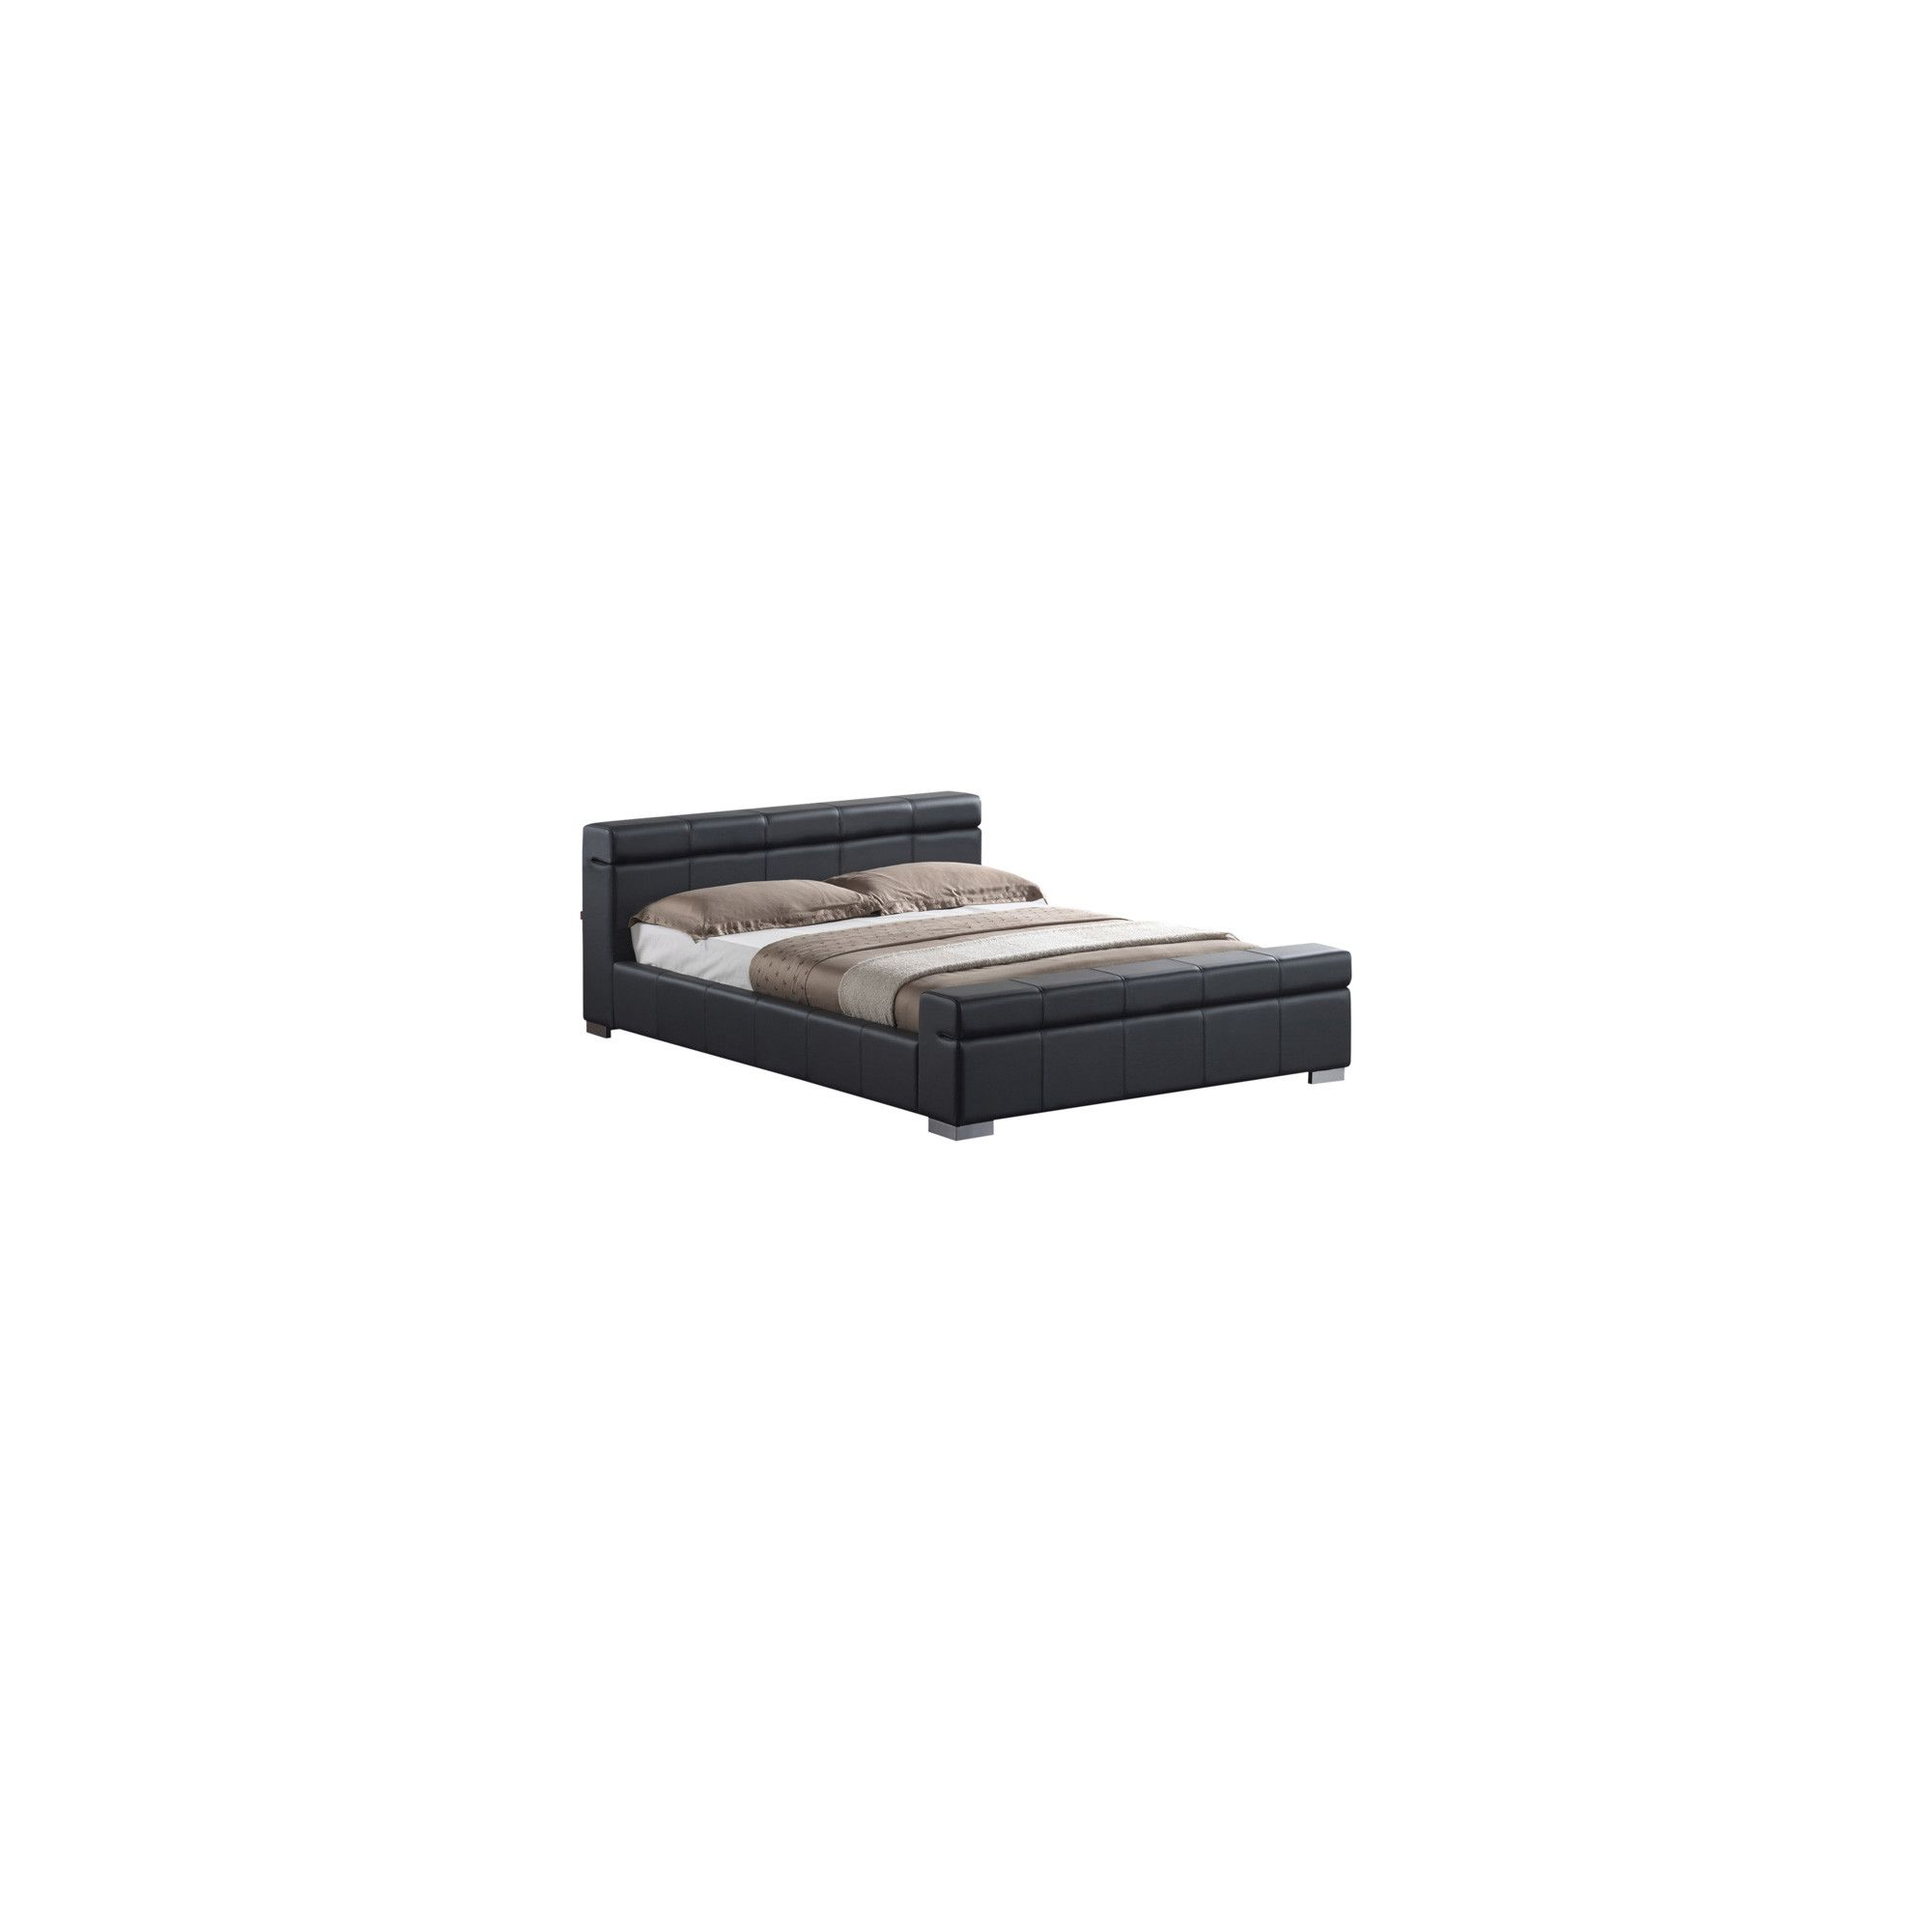 Altruna Durham Faux Leather Bed Frame - Black - King at Tesco Direct